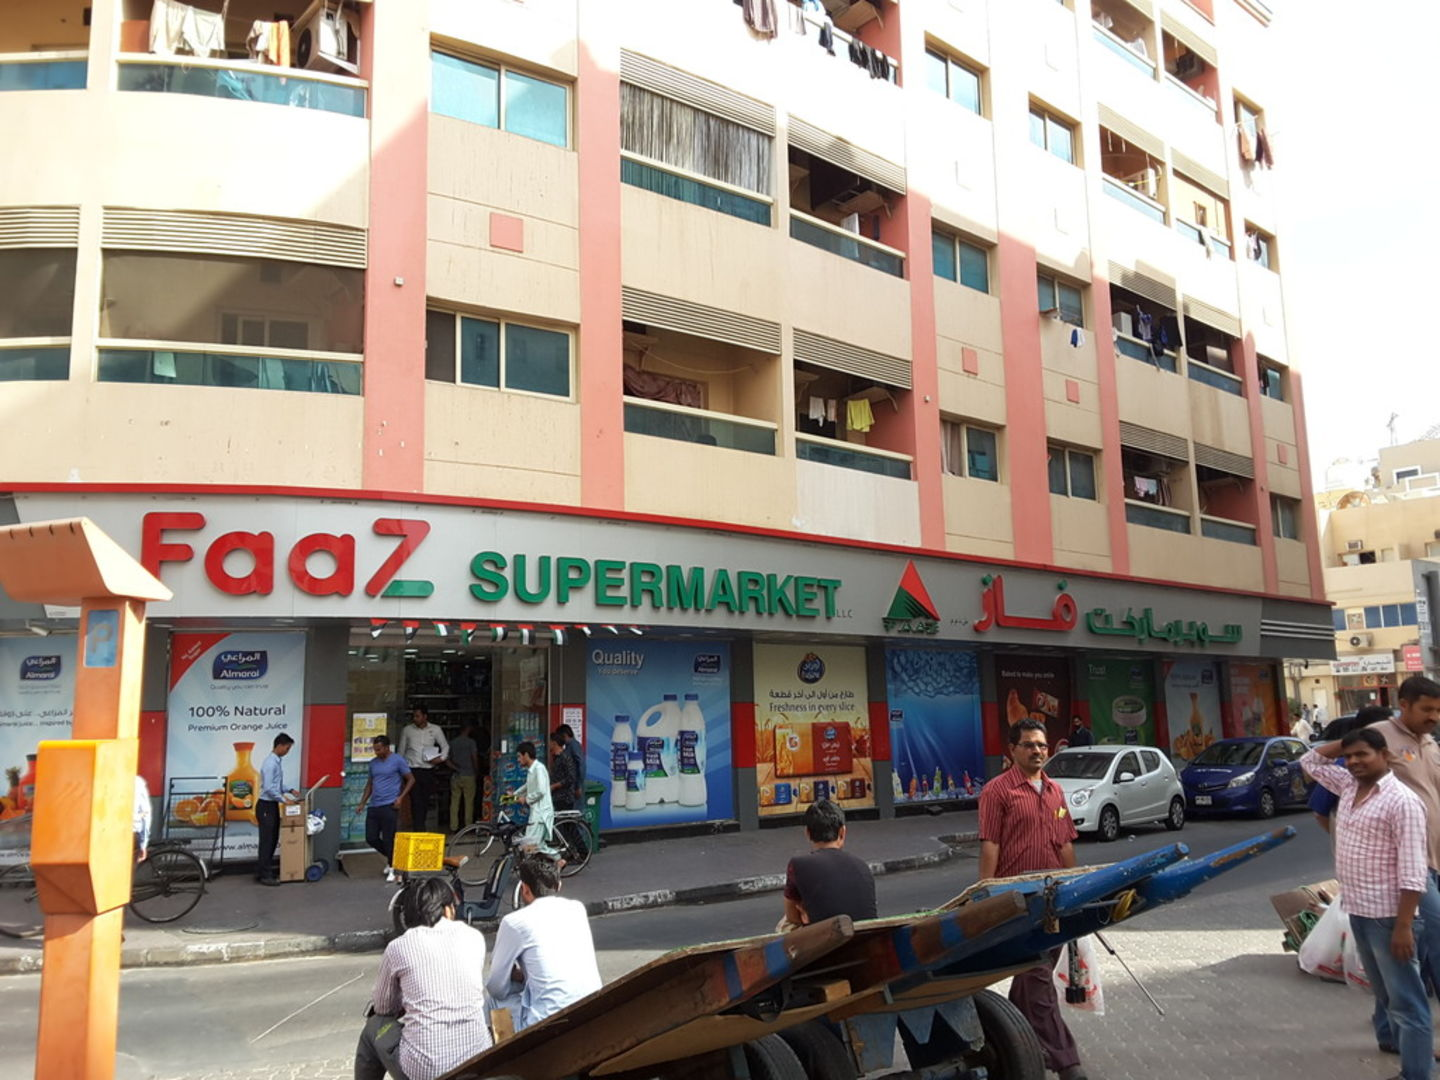 HiDubai-business-faaz-supermarket-food-beverage-supermarkets-hypermarkets-grocery-stores-the-palm-deira-dubai-2